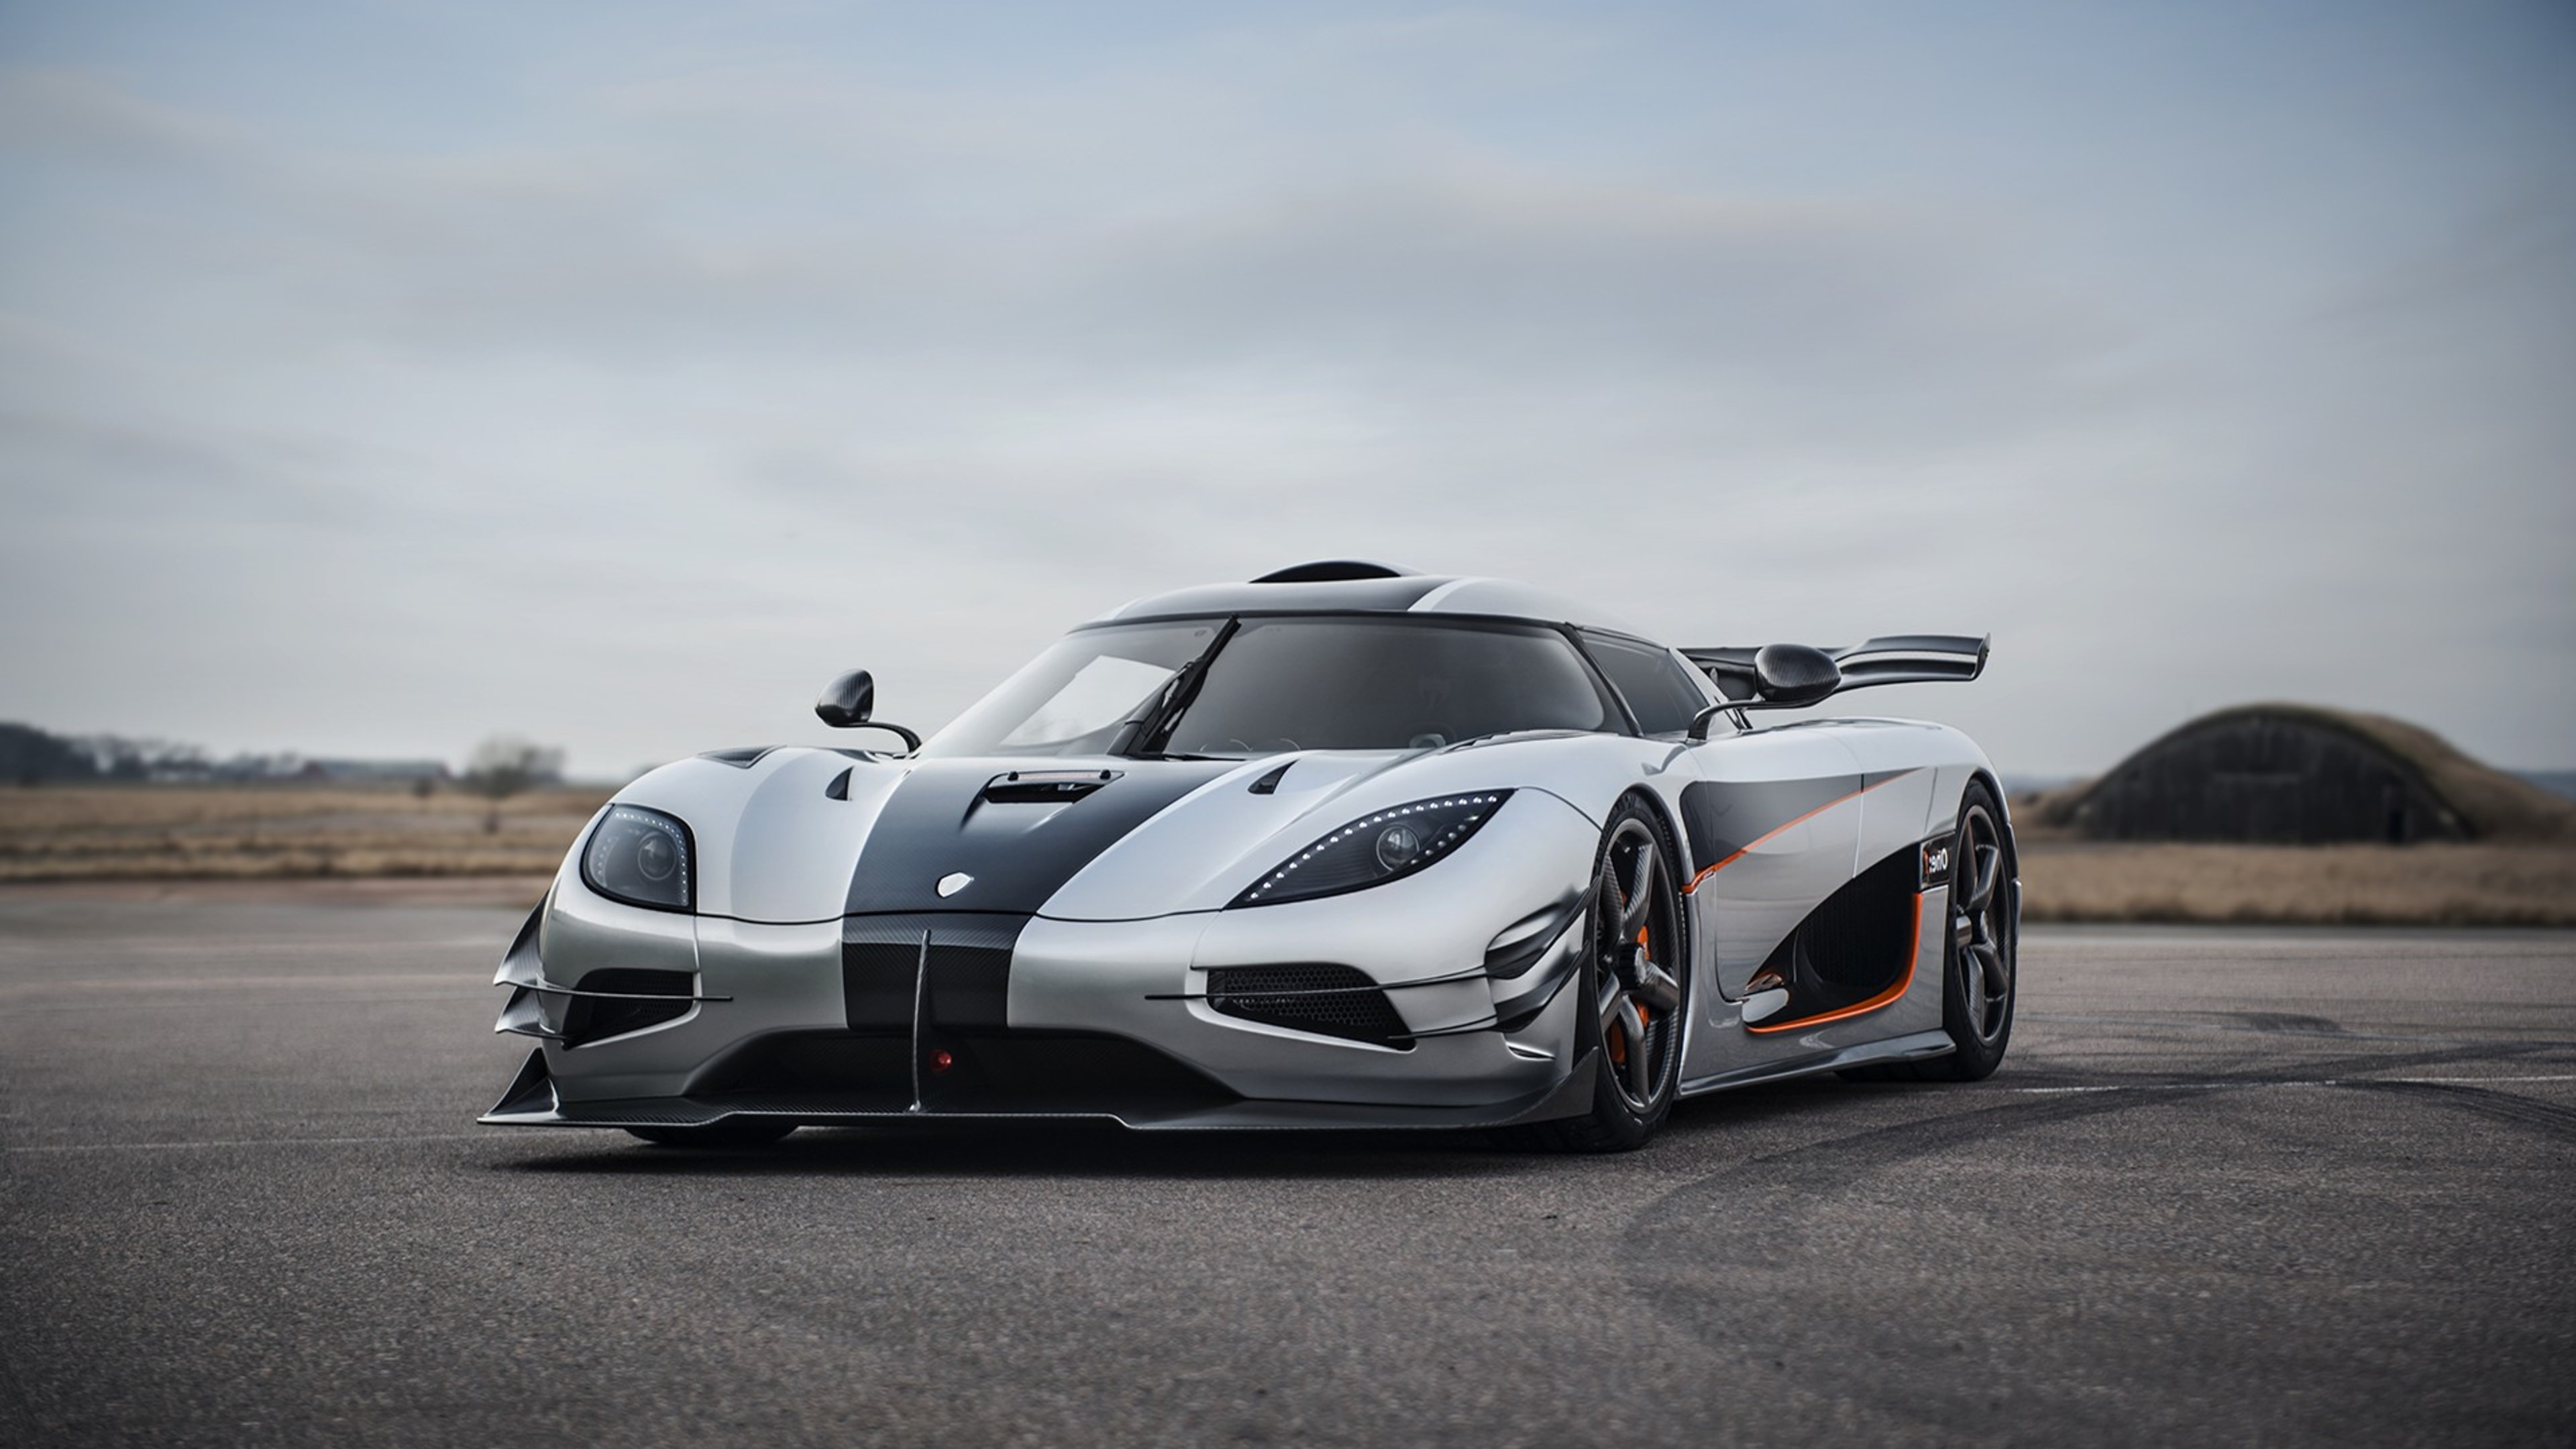 Beautiful Koenigsegg CCXR Car